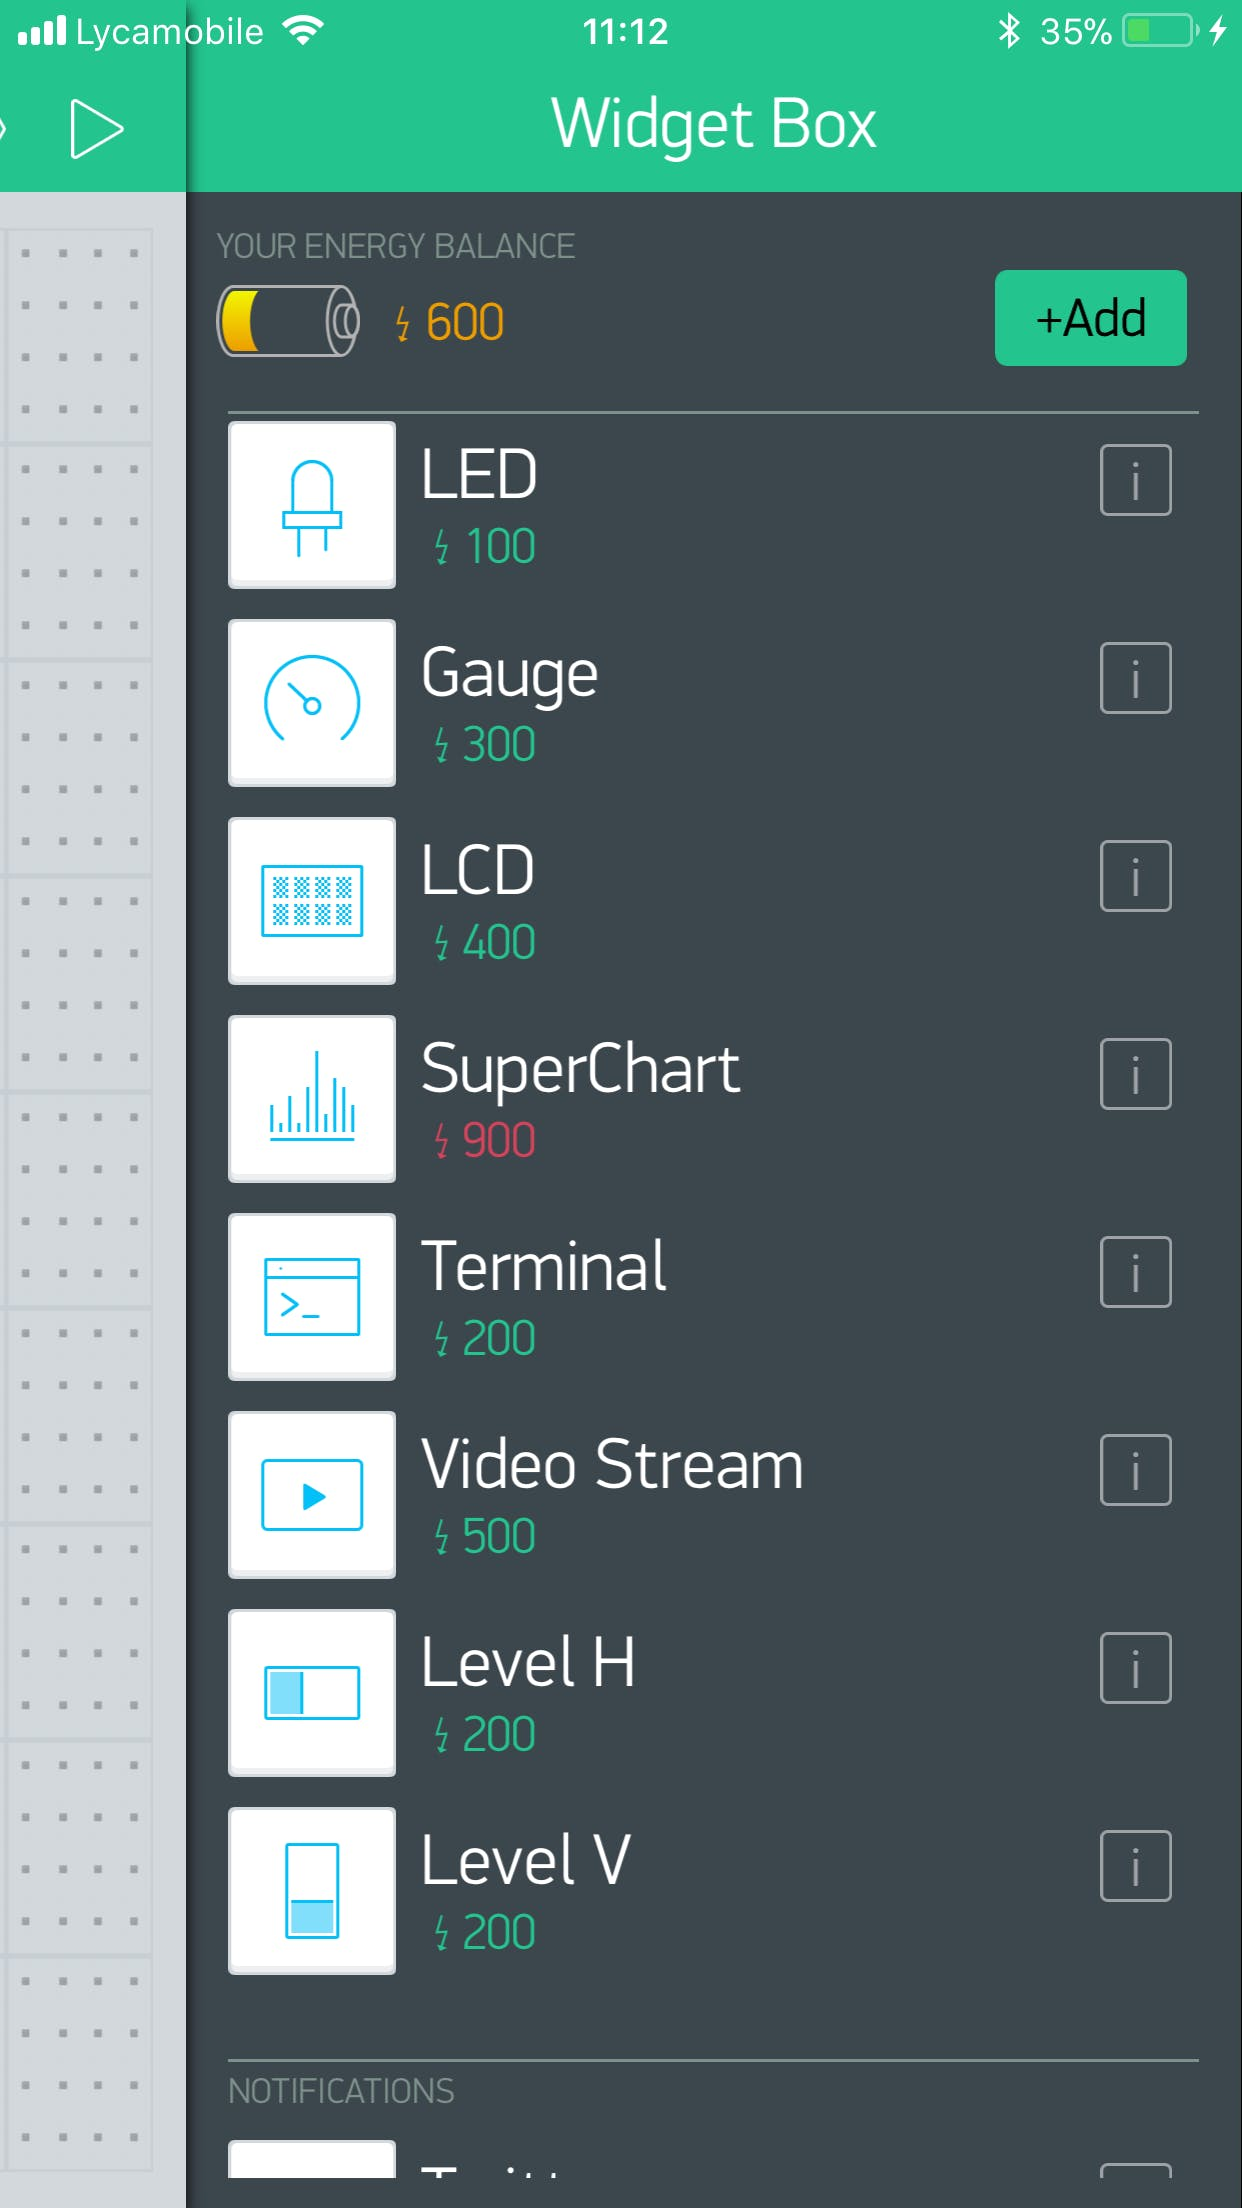 Scroll down and select the Terminal Widget from the menu